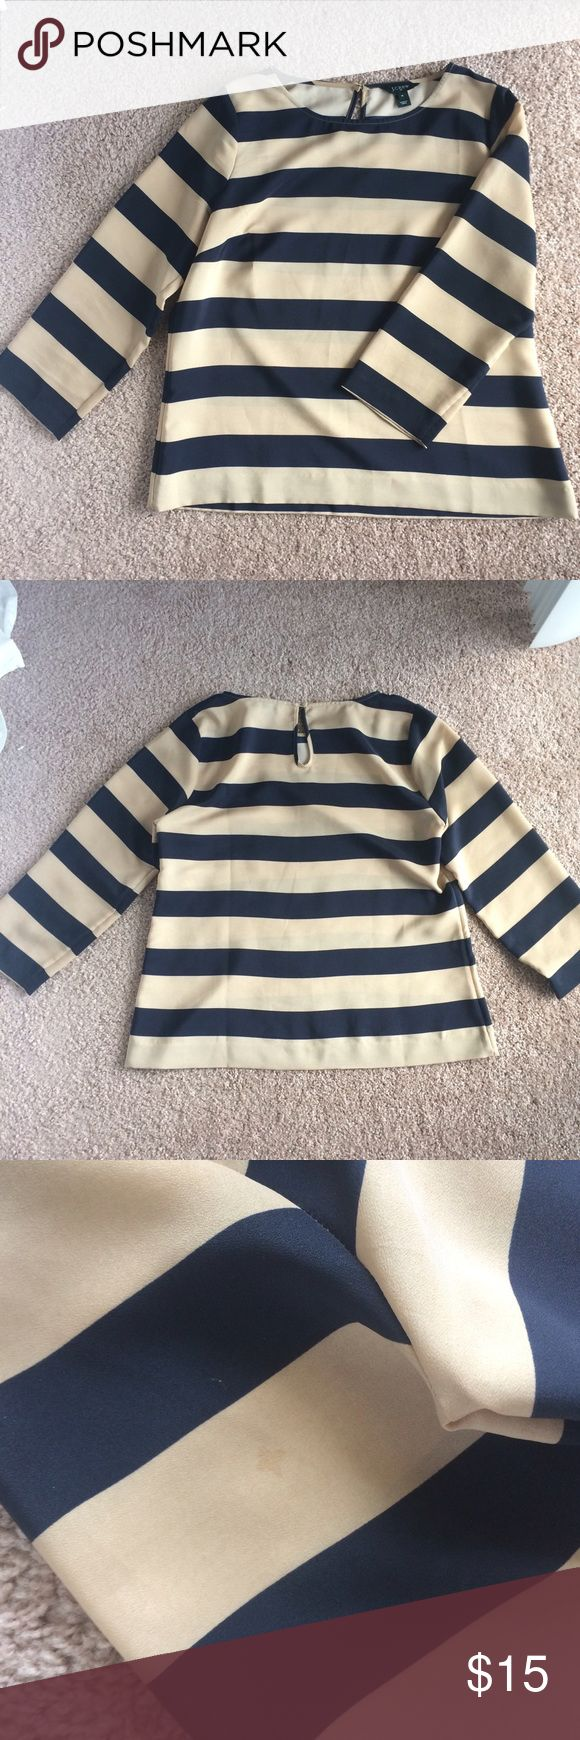 J Crew Navy/Tan Striped Blouse J Crew Navy/Tan Striped Blouse - Very good condition with one small stain on back of sleeve (see photo) - 100% Polyester J. Crew Tops Blouses